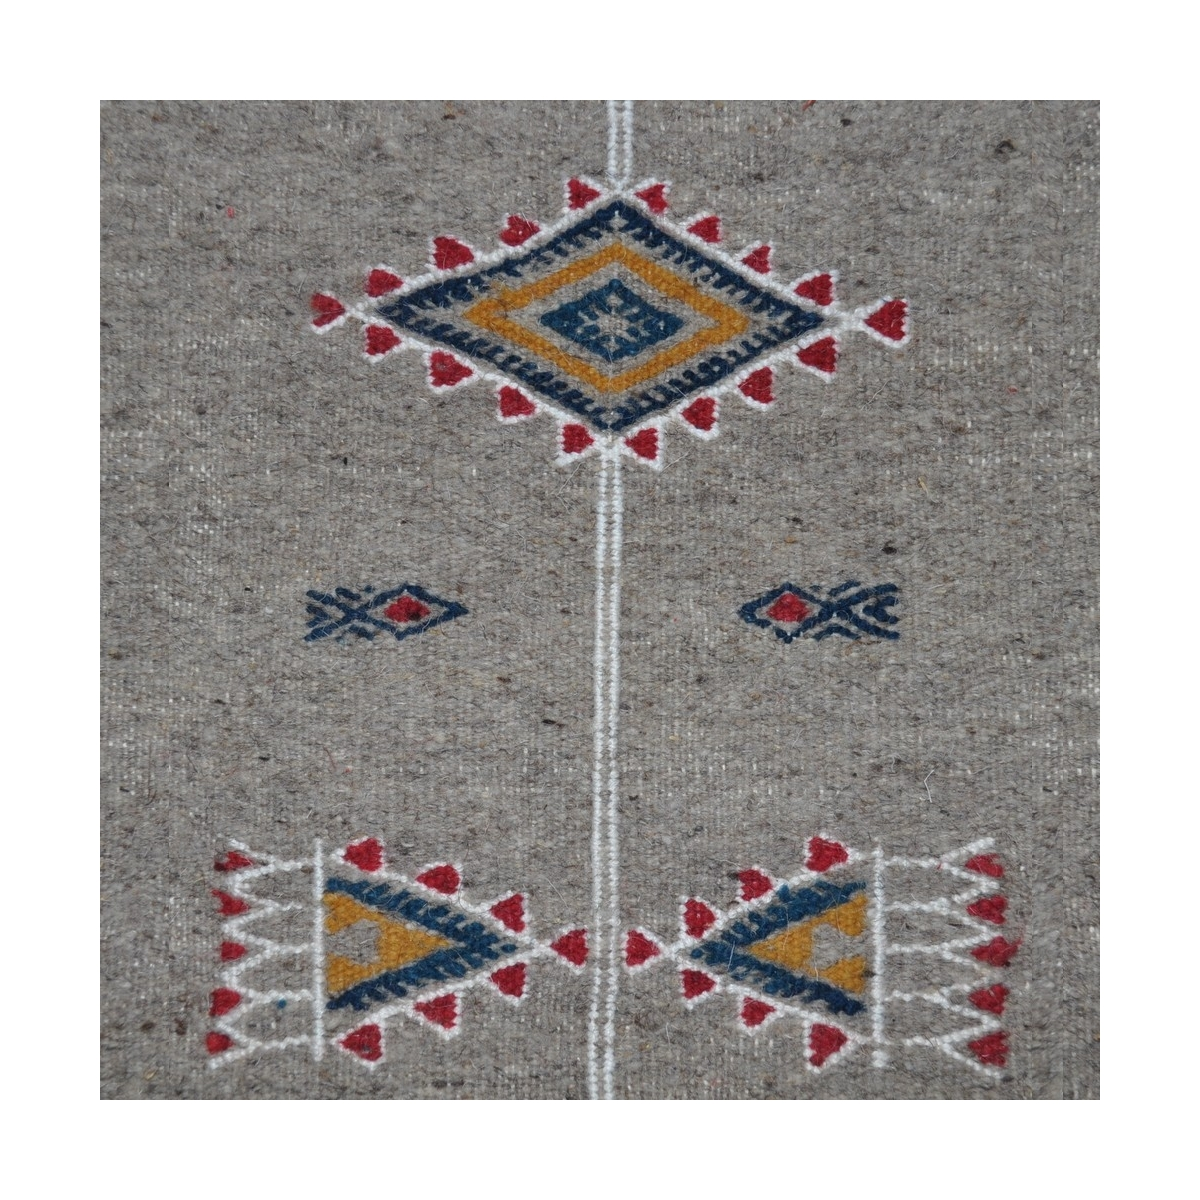 Berber carpet Rug Kilim Messadine 55x105 Grey/Red/Blue/Yellow (Handmade, Wool) Tunisian Rug Kilim style Moroccan rug. Rectangula